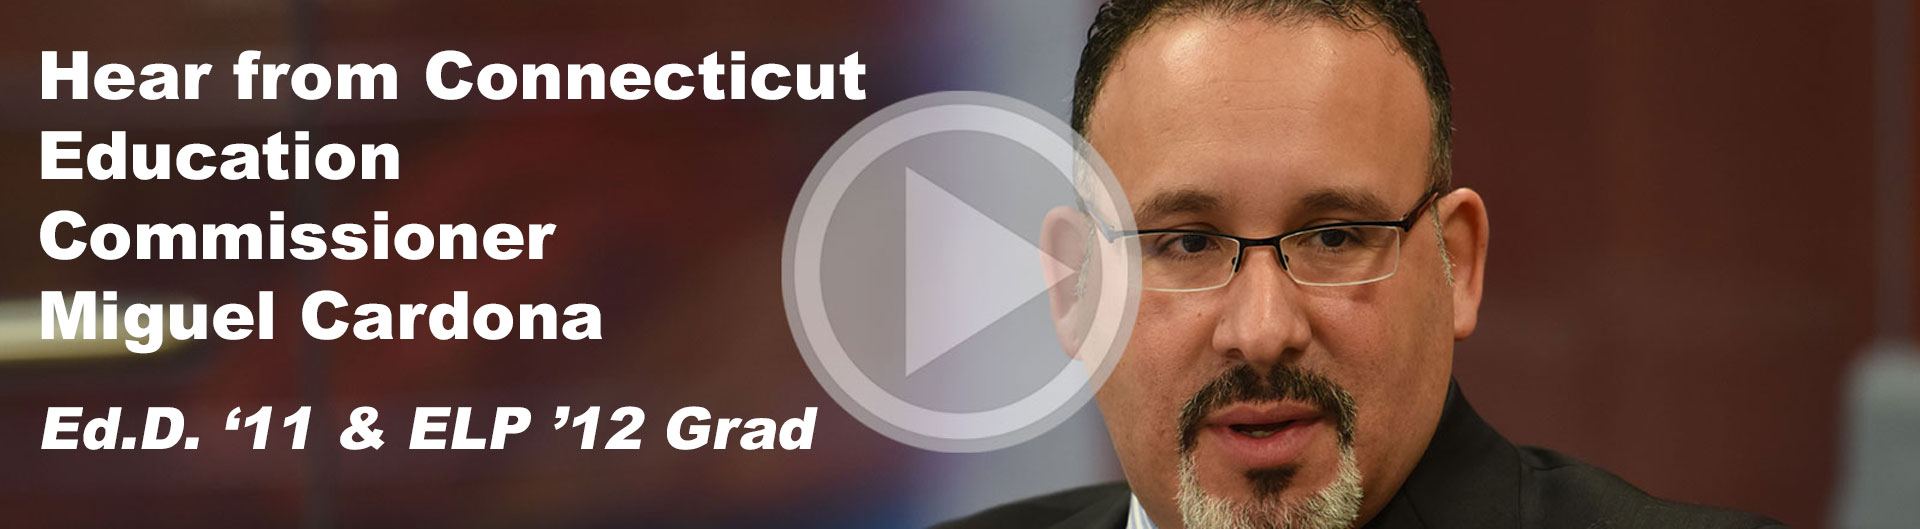 Hear from CT Education Commissioner Miguel Cardona Ed.D. '11 and ELP '12 grad